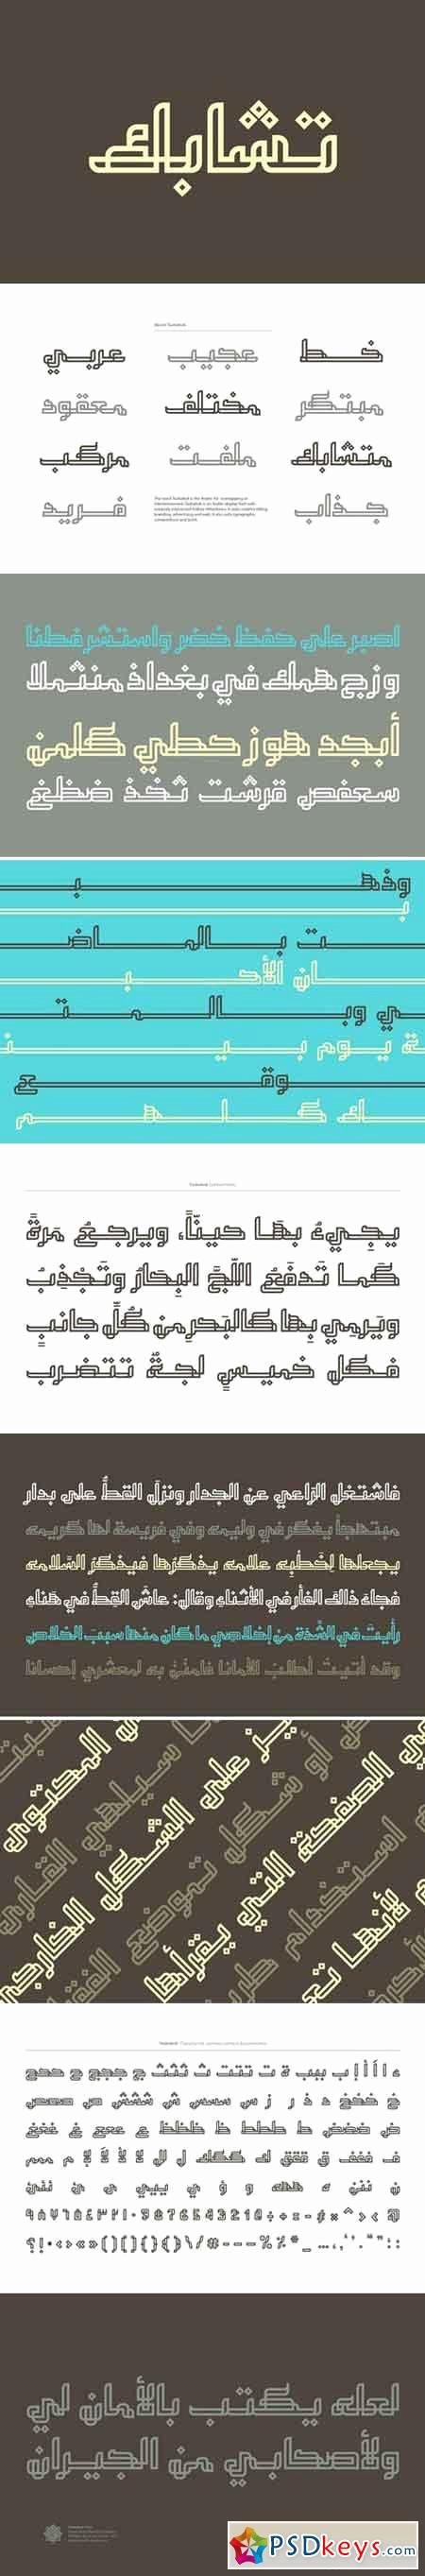 Arabic Fonts for Photoshop Inspirational Arabic Free Download Shop Vector Stock Image Via